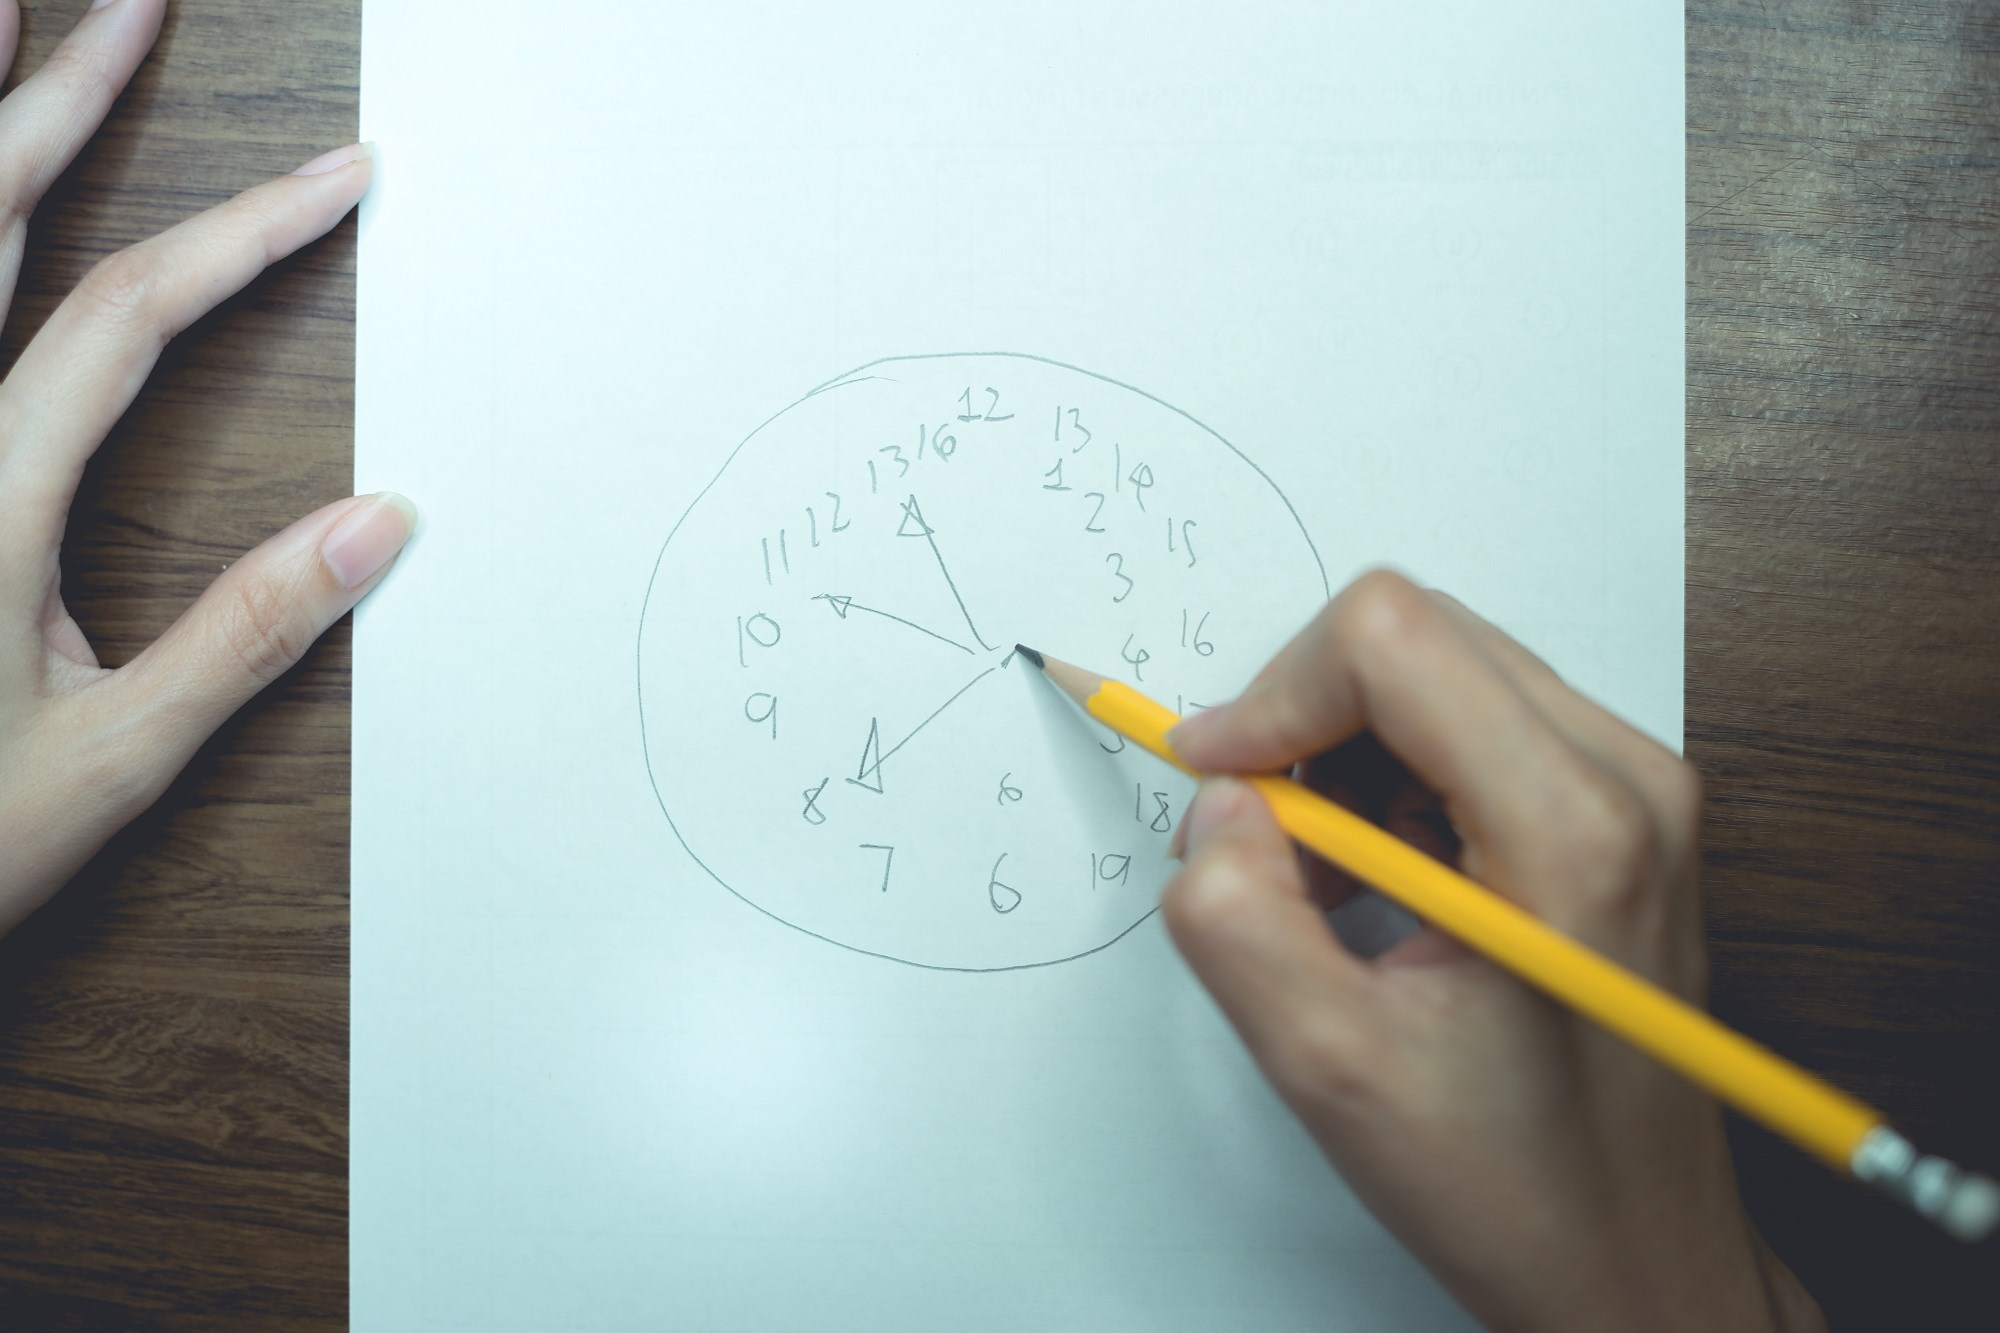 In a clock drawing task, the participant is asked to draw a clock showing a specific time.